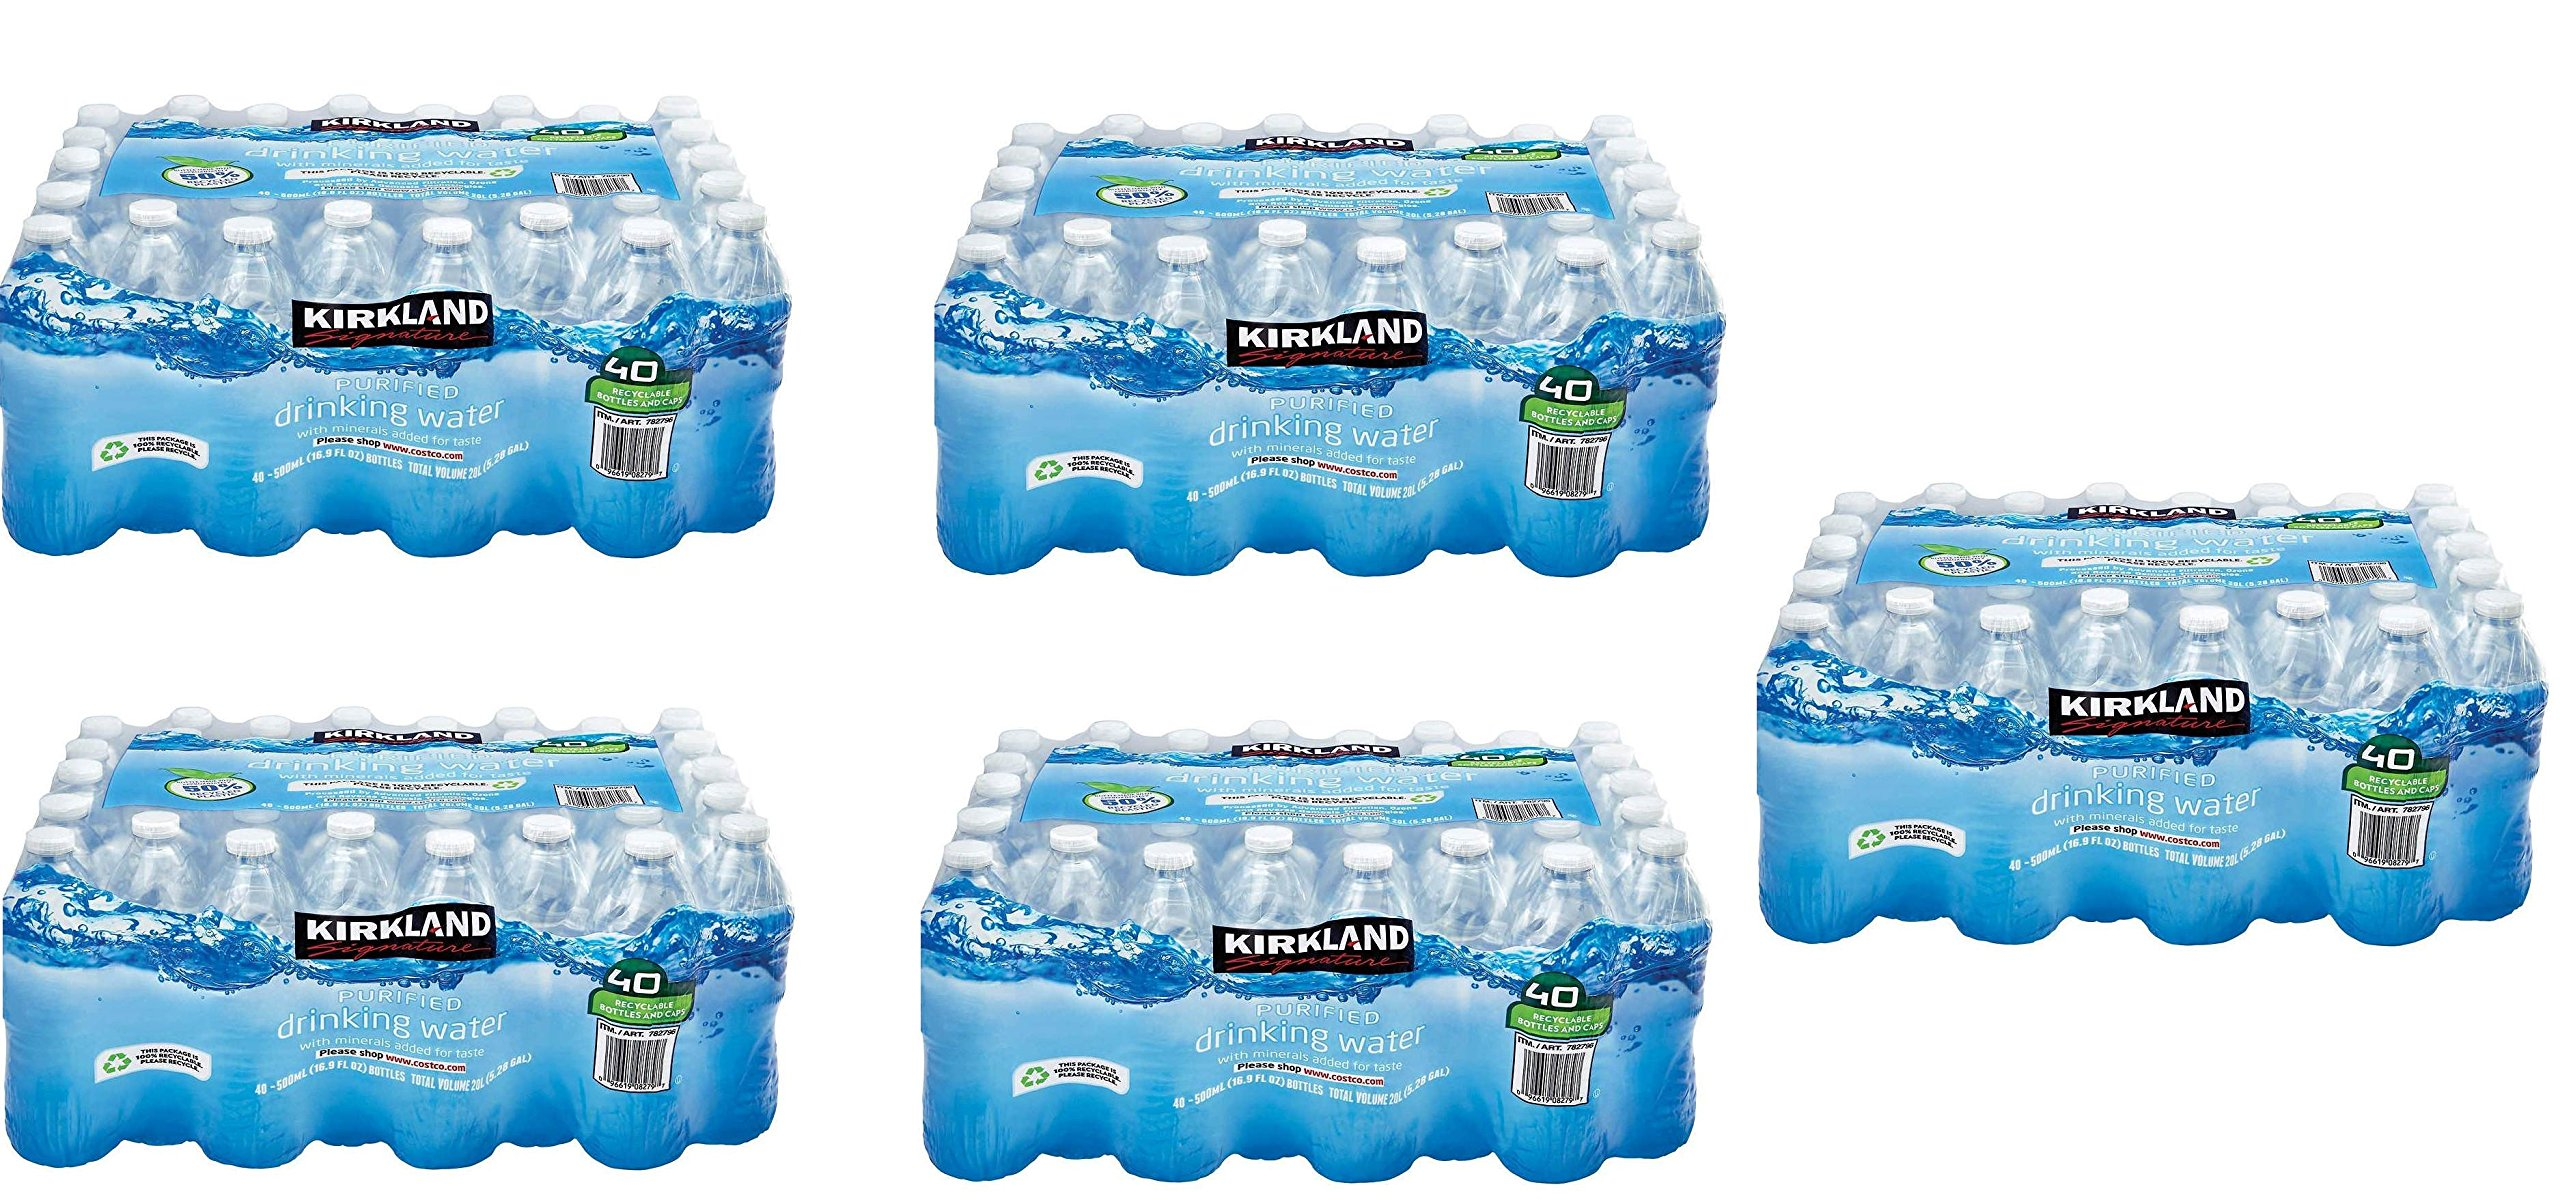 Kirkland Signature Purified Drinking Water, 16.9 Ounce, 5 Pack of 40 Bottles